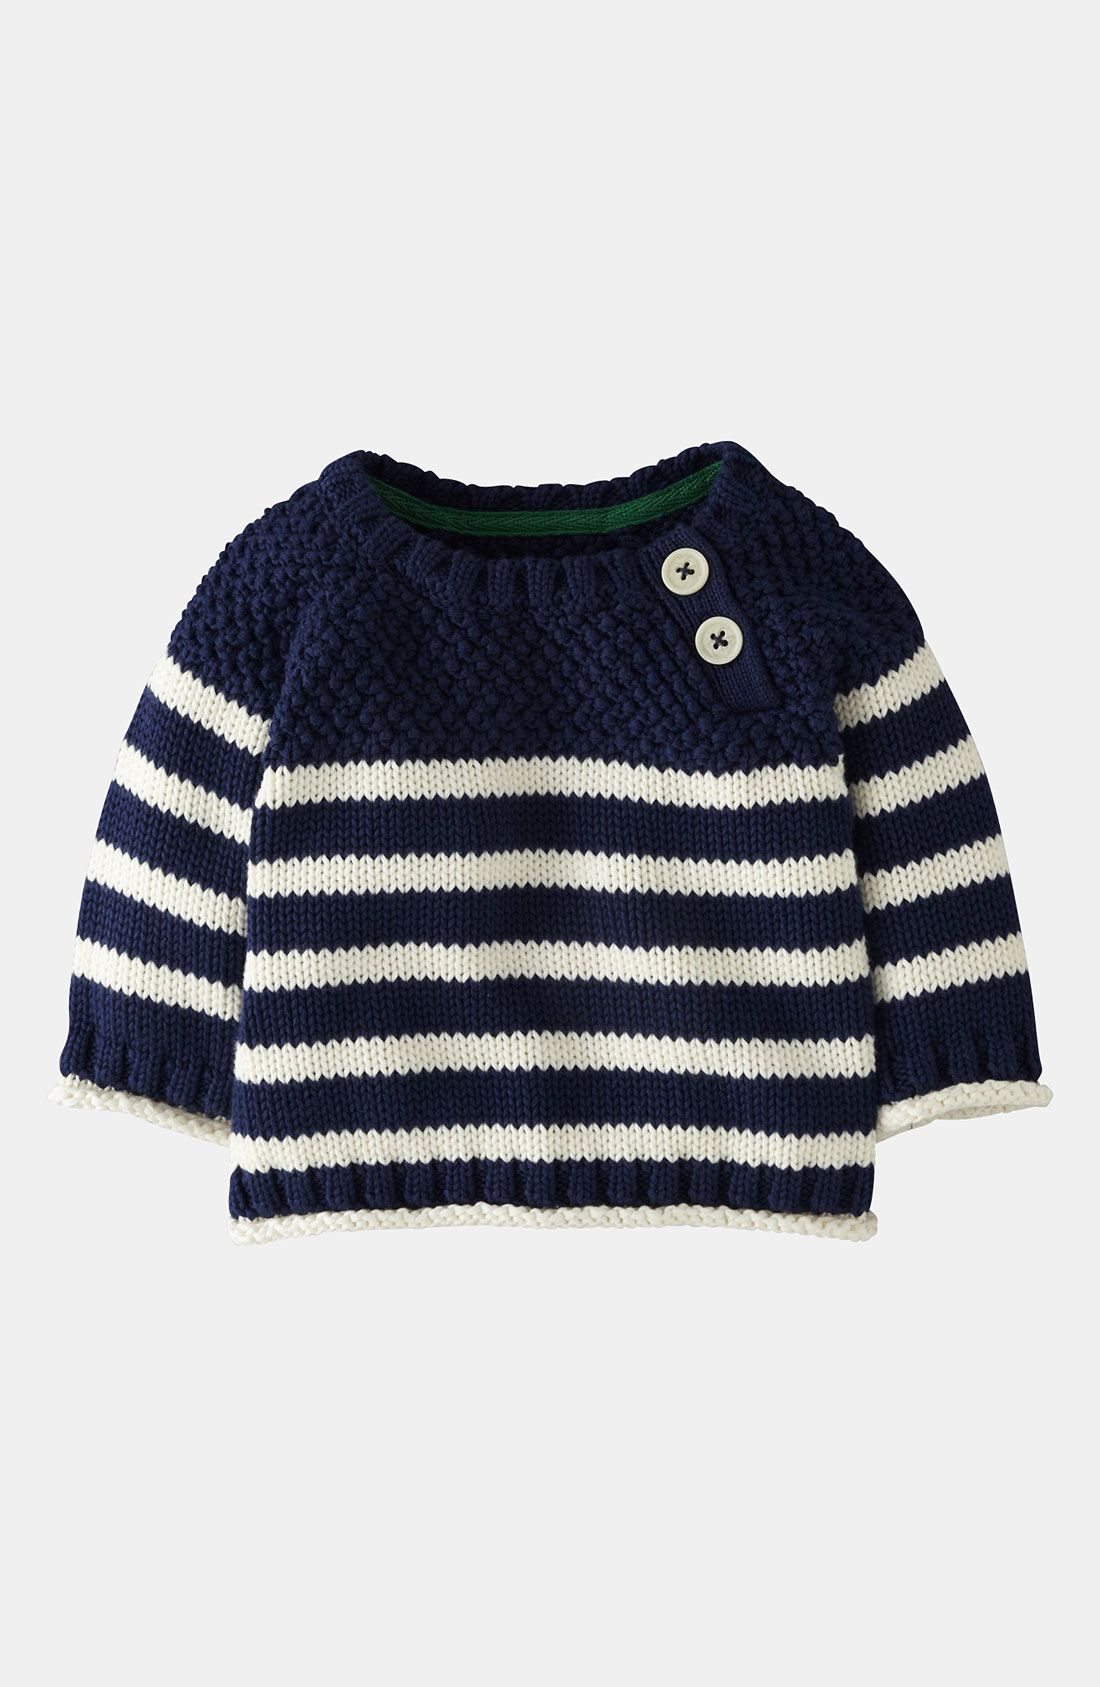 e0a0eef08c2 Free shipping and returns on Mini Boden Knit Sweater (Baby) at ...